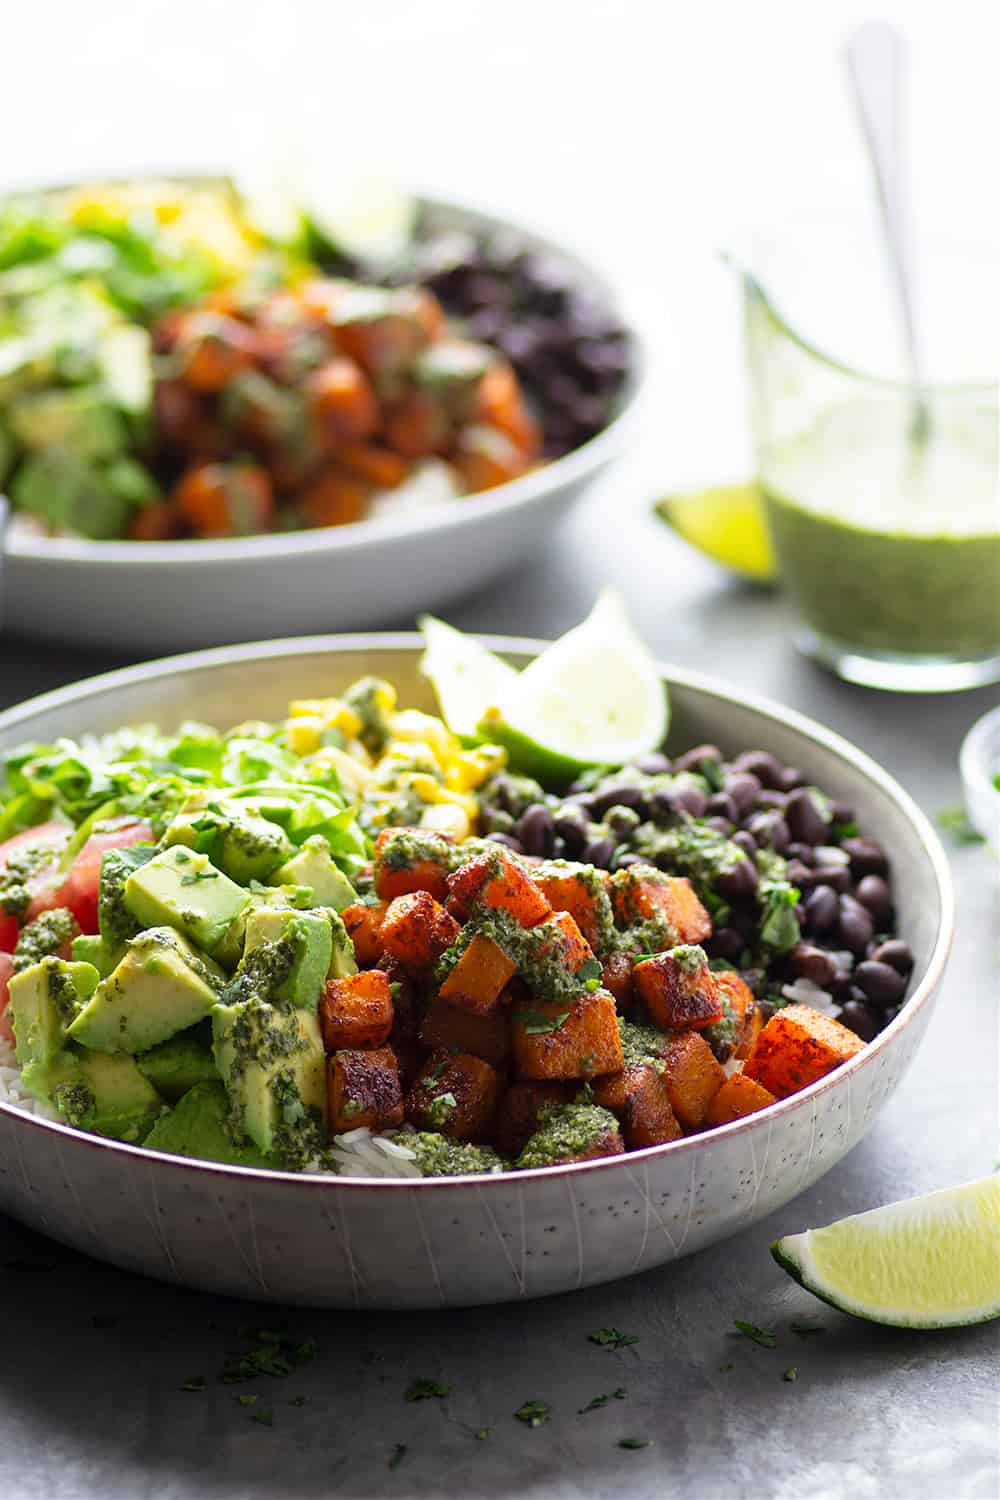 Blackened butternut squash burrito bowls are piled high with all the fixins' and a flavorful fresh mojo sauce for a healthy take on burrito bowls! Completely vegetarian AND vegan!